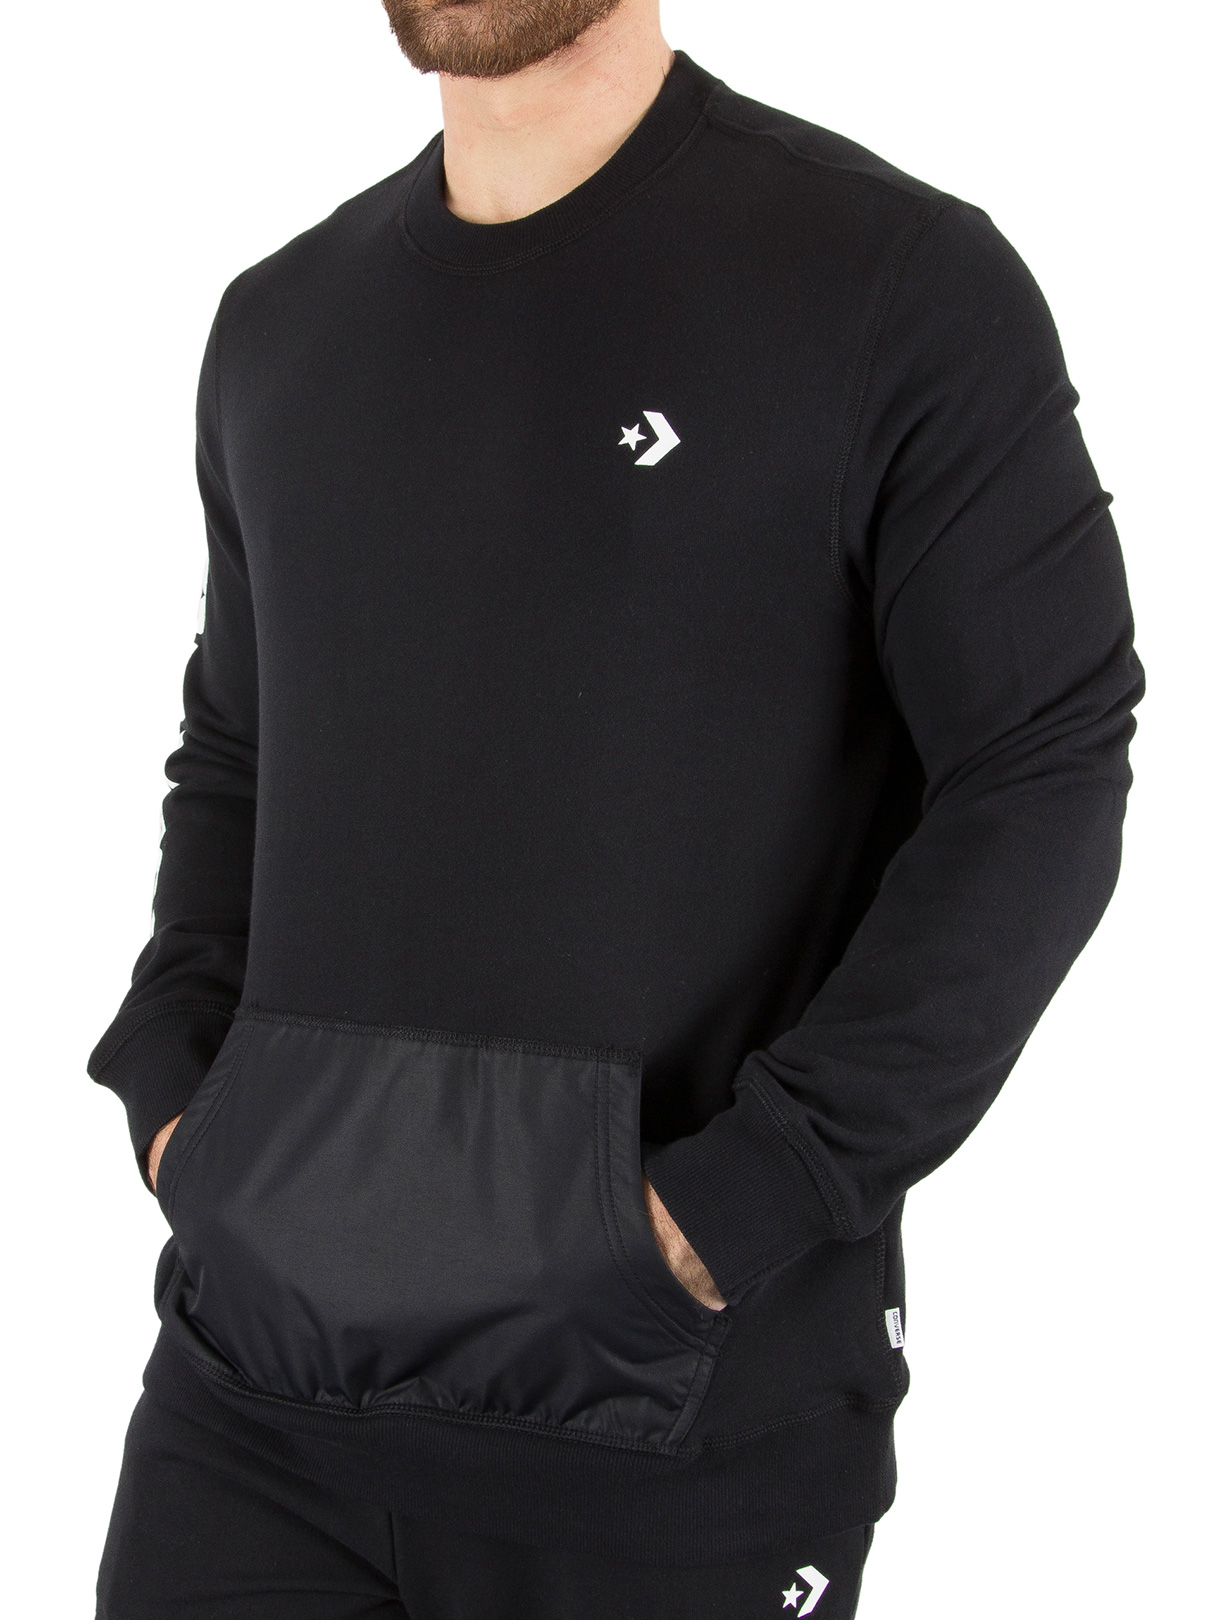 Stand-out.net Converse Black Mixed Media Sweatshirt